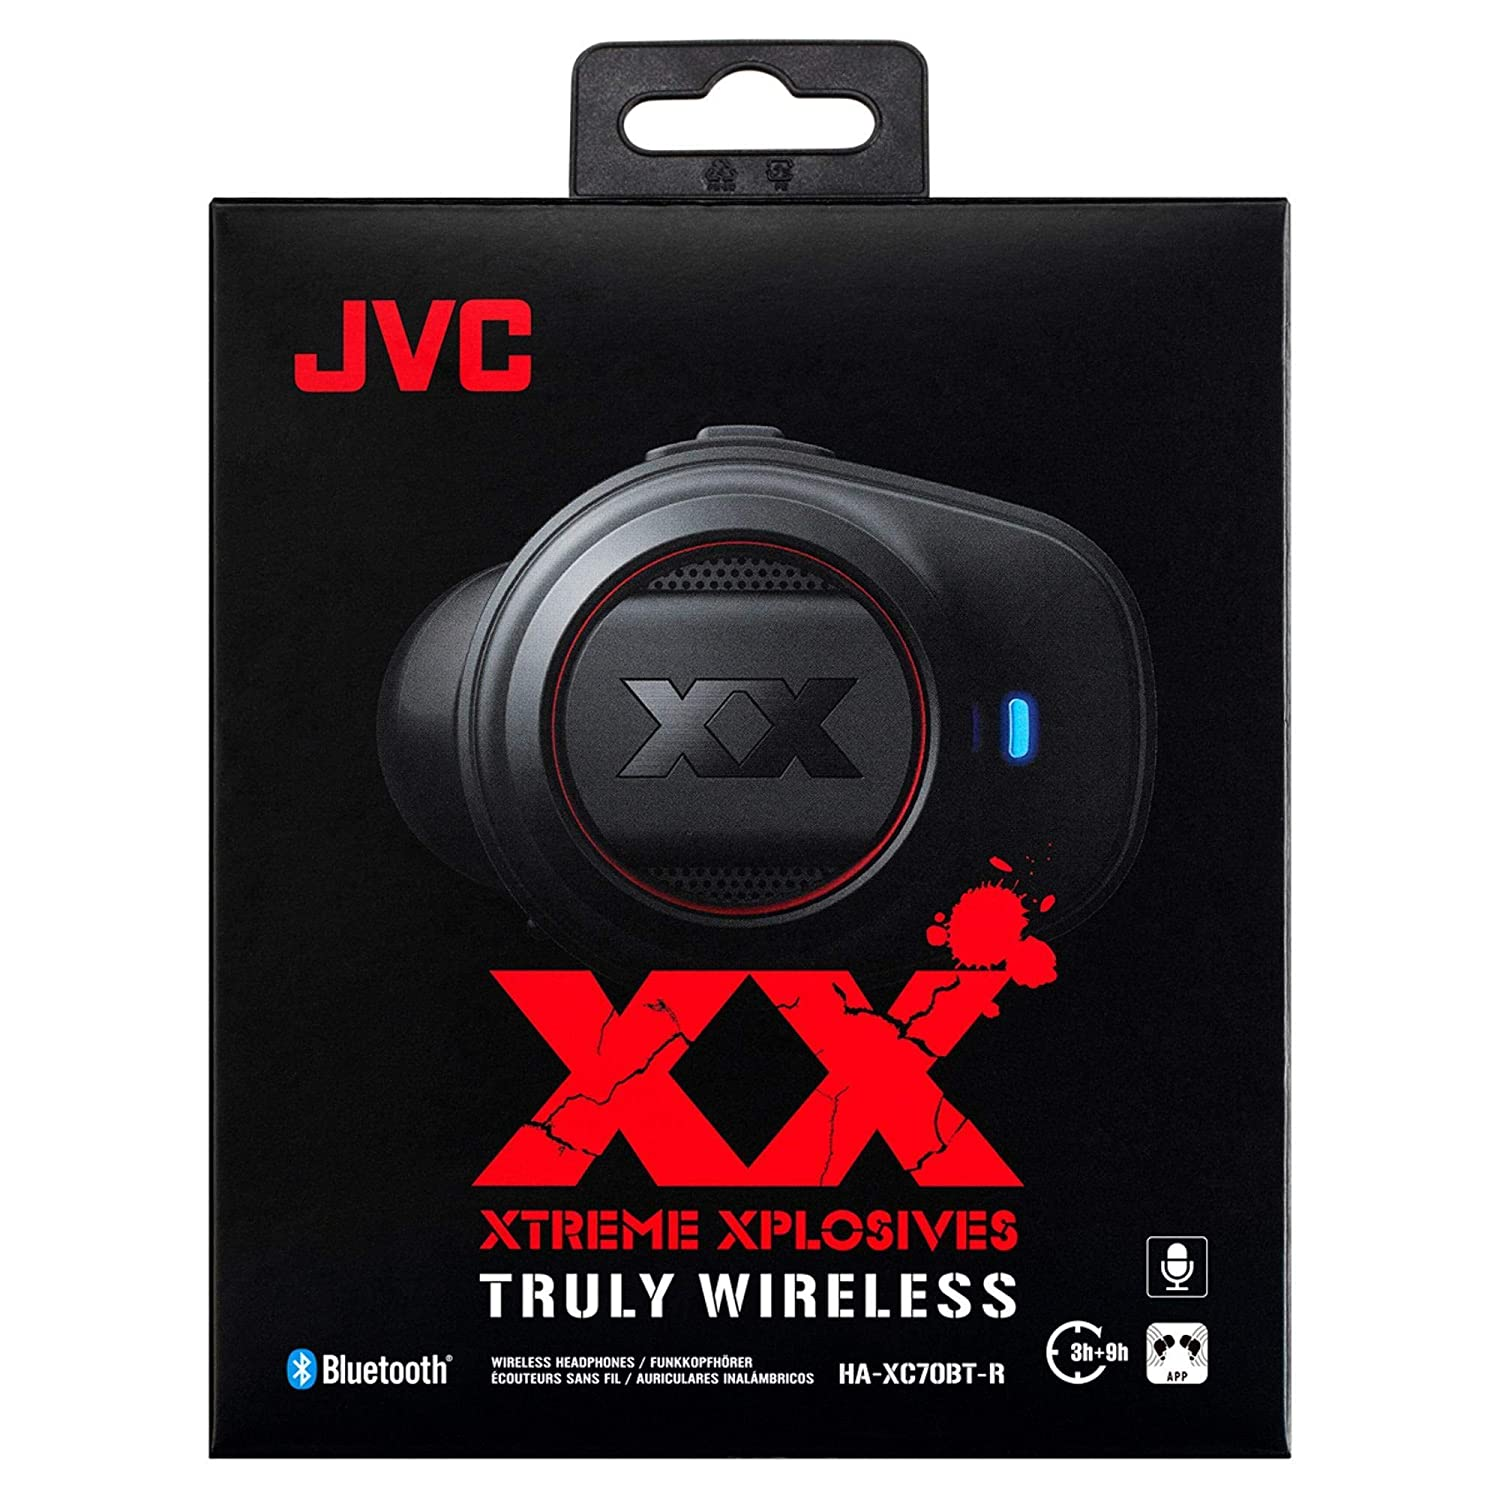 Amazon.com: JVC Bluetooth Wireless Stereo Earphone HA-XC70BT-R (RED)【Japan Domestic Genuine Products】【Ships from Japan】: Home Audio & Theater